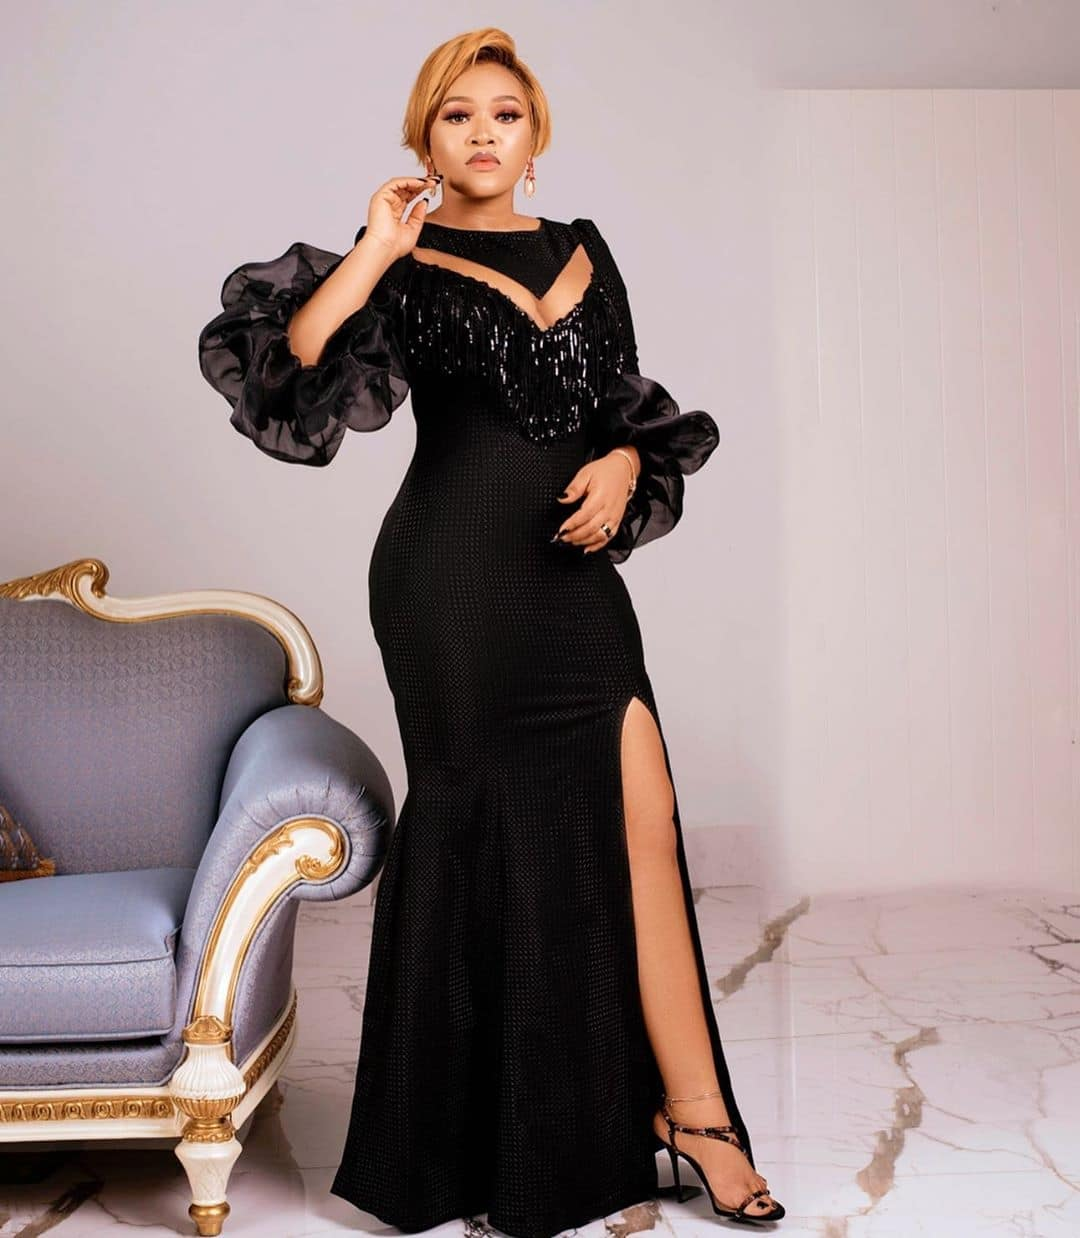 heres-how-nigerian-celebrities-want-you-to-dress-as-the-ideal-wedding-guest-with-style-for-weddings-this-december